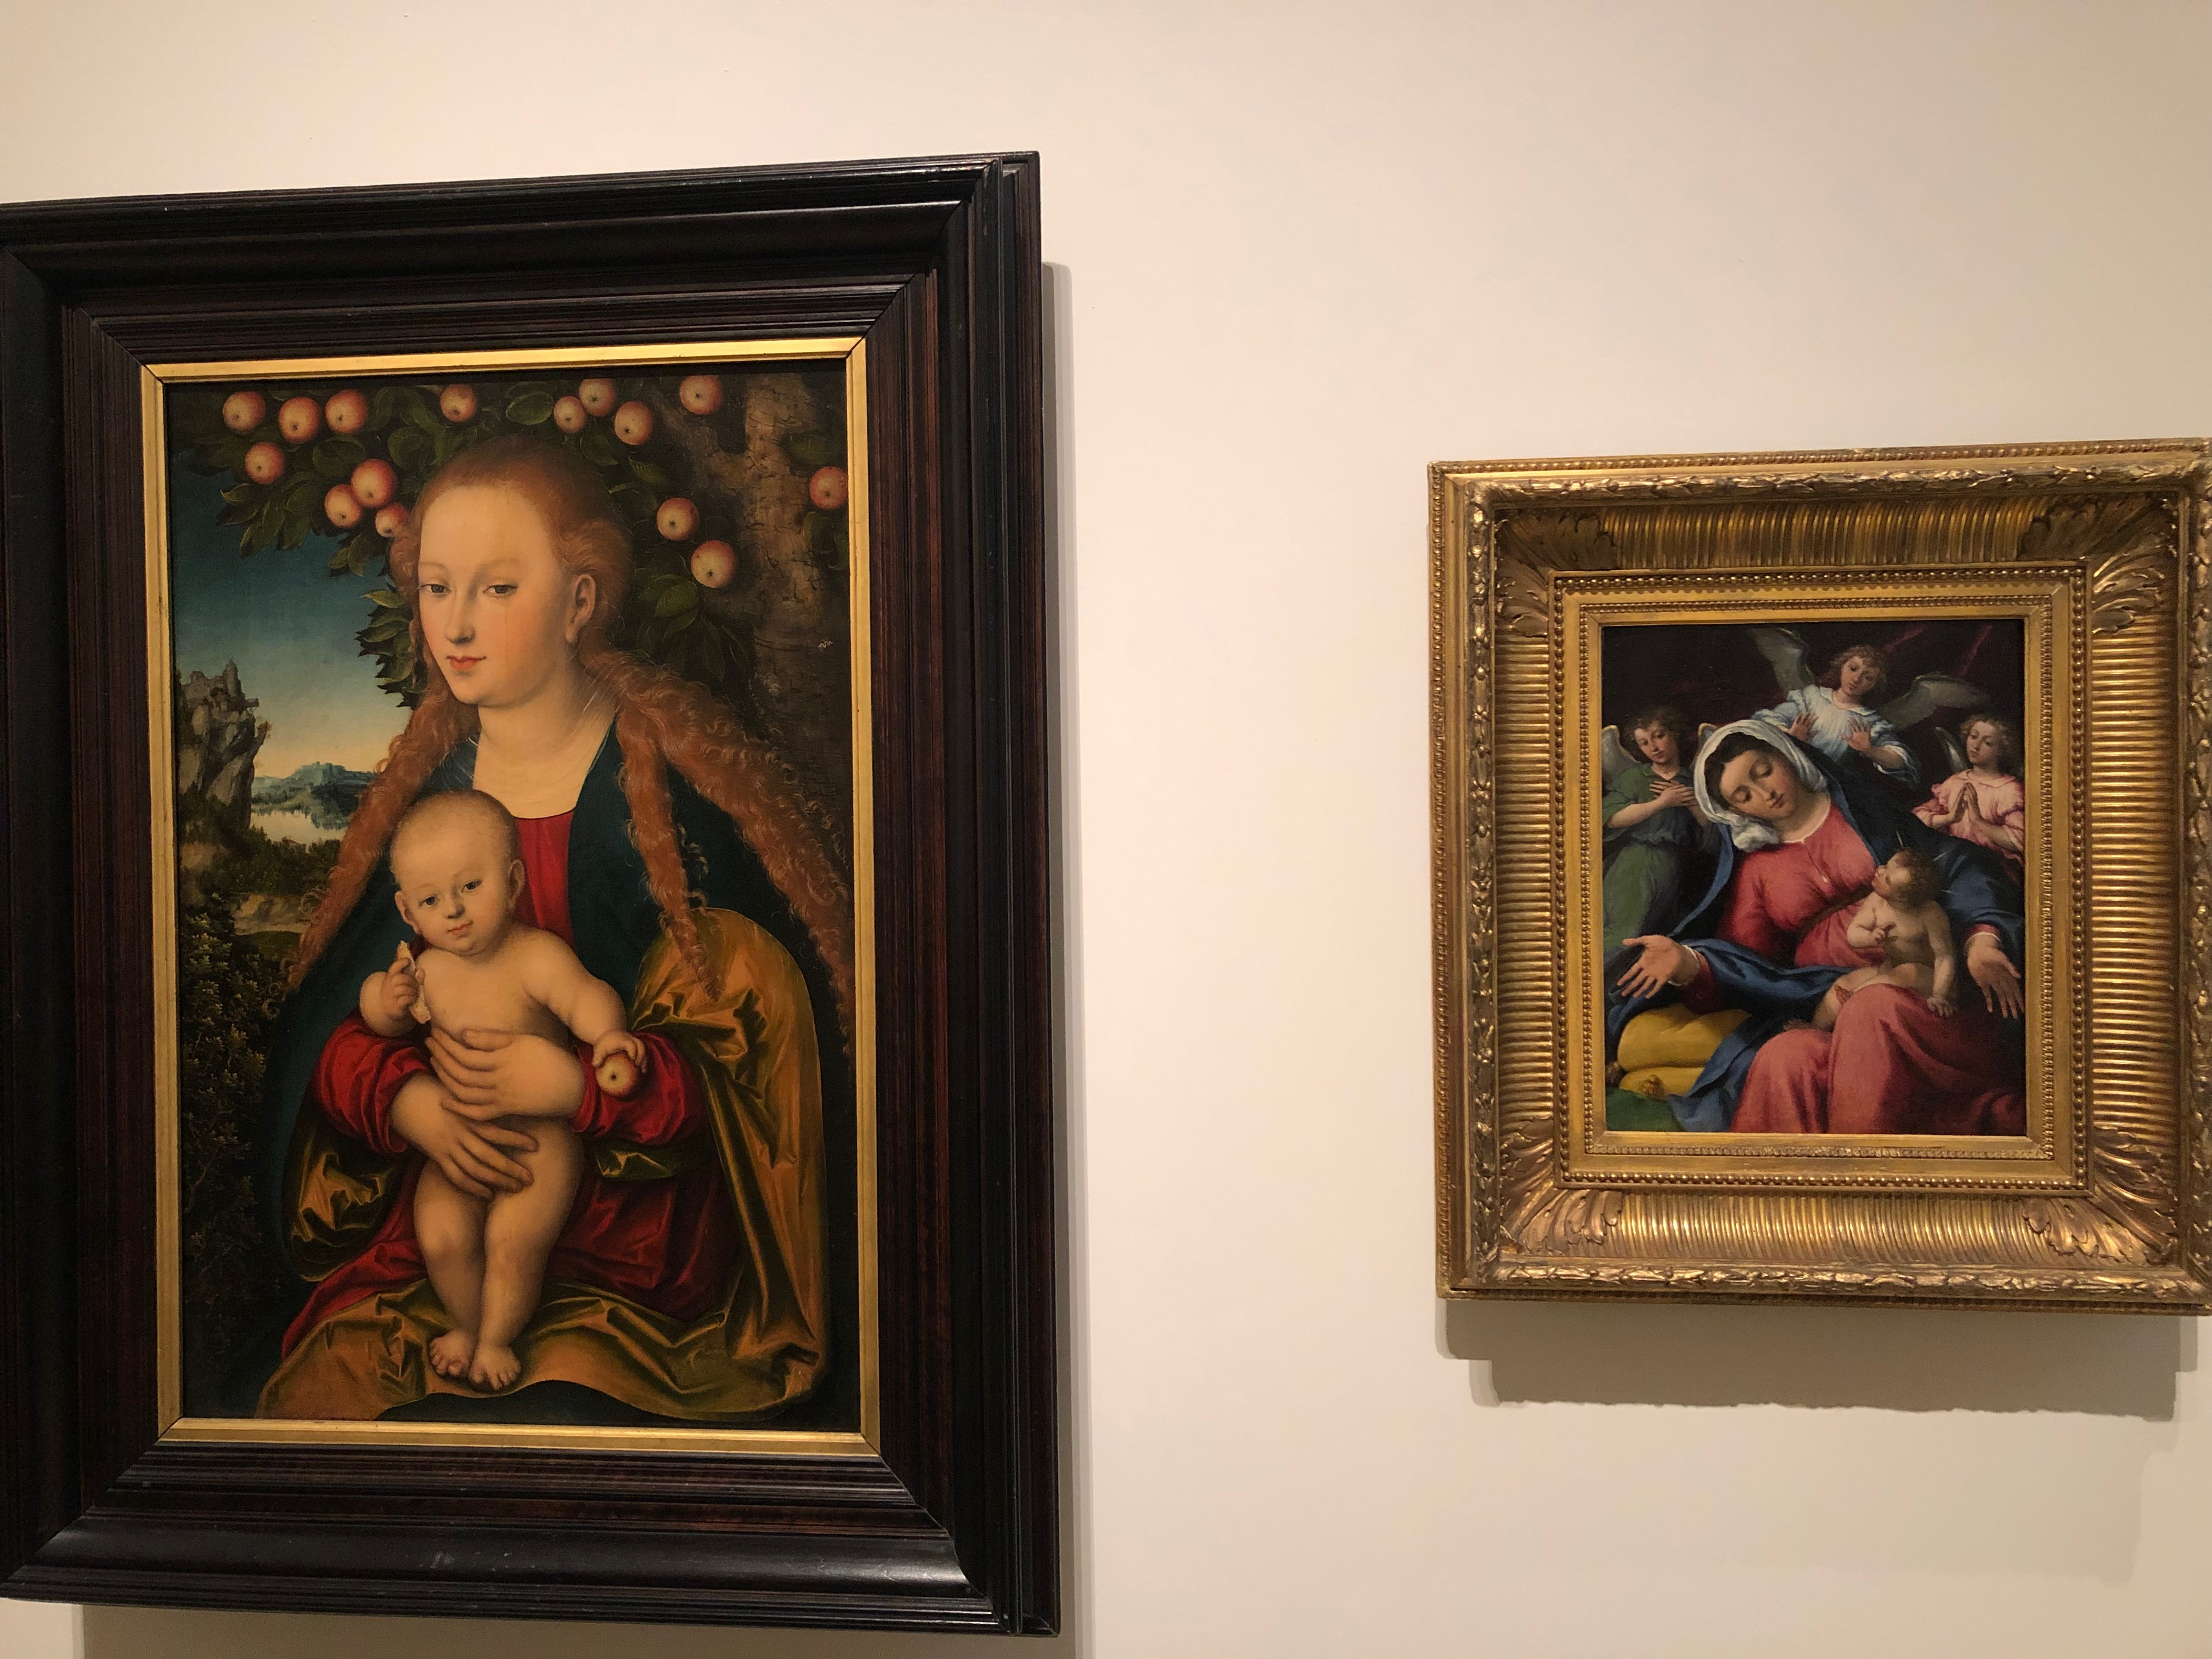 Mary and the Christ Child under the Apple Tree,  Lucas Cranach the Elder, 1527-30 (on the left); Madonna delle Grazie, Lorenzo Lotto, 1542 (on the right)